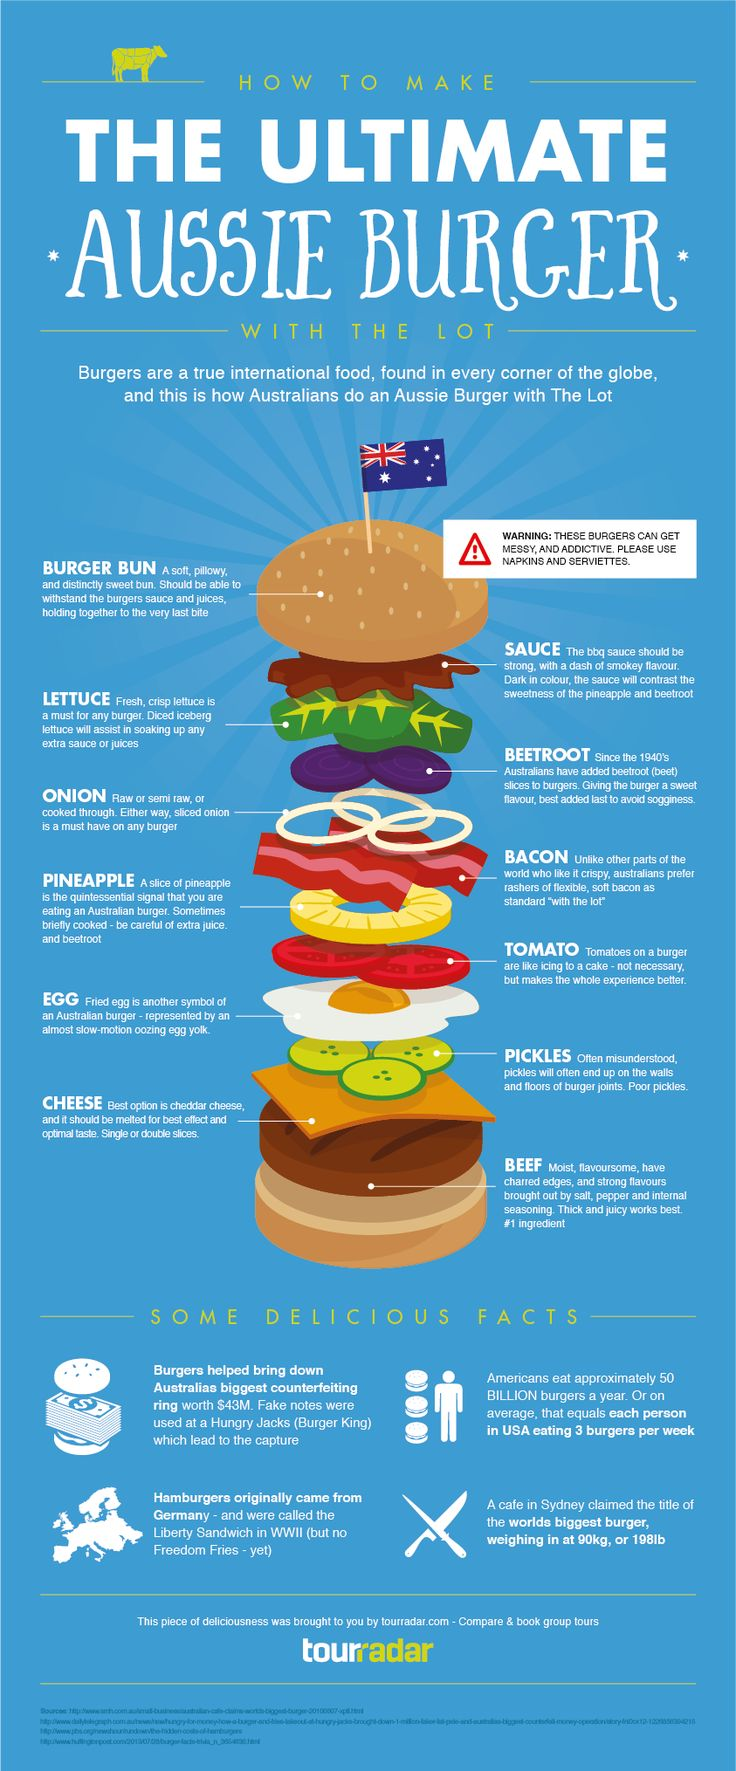 australian burger with the lot - Google Search